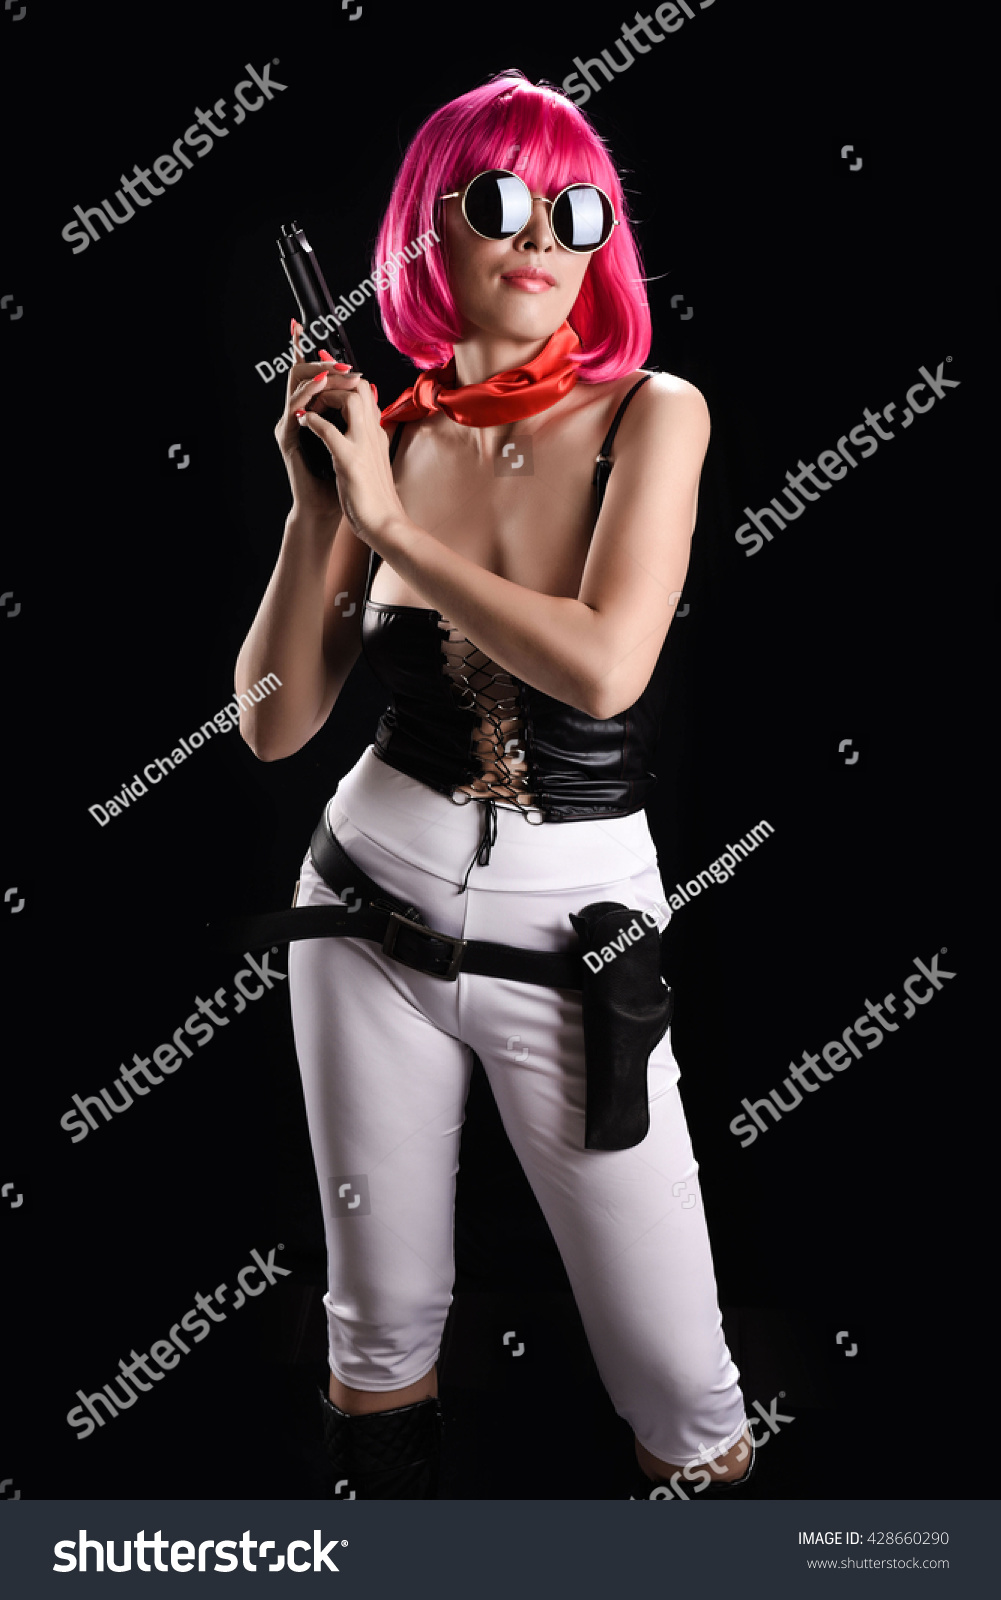 Studio shot Sexy beauty killer women wearing action suit holding the gun  isolate in black background